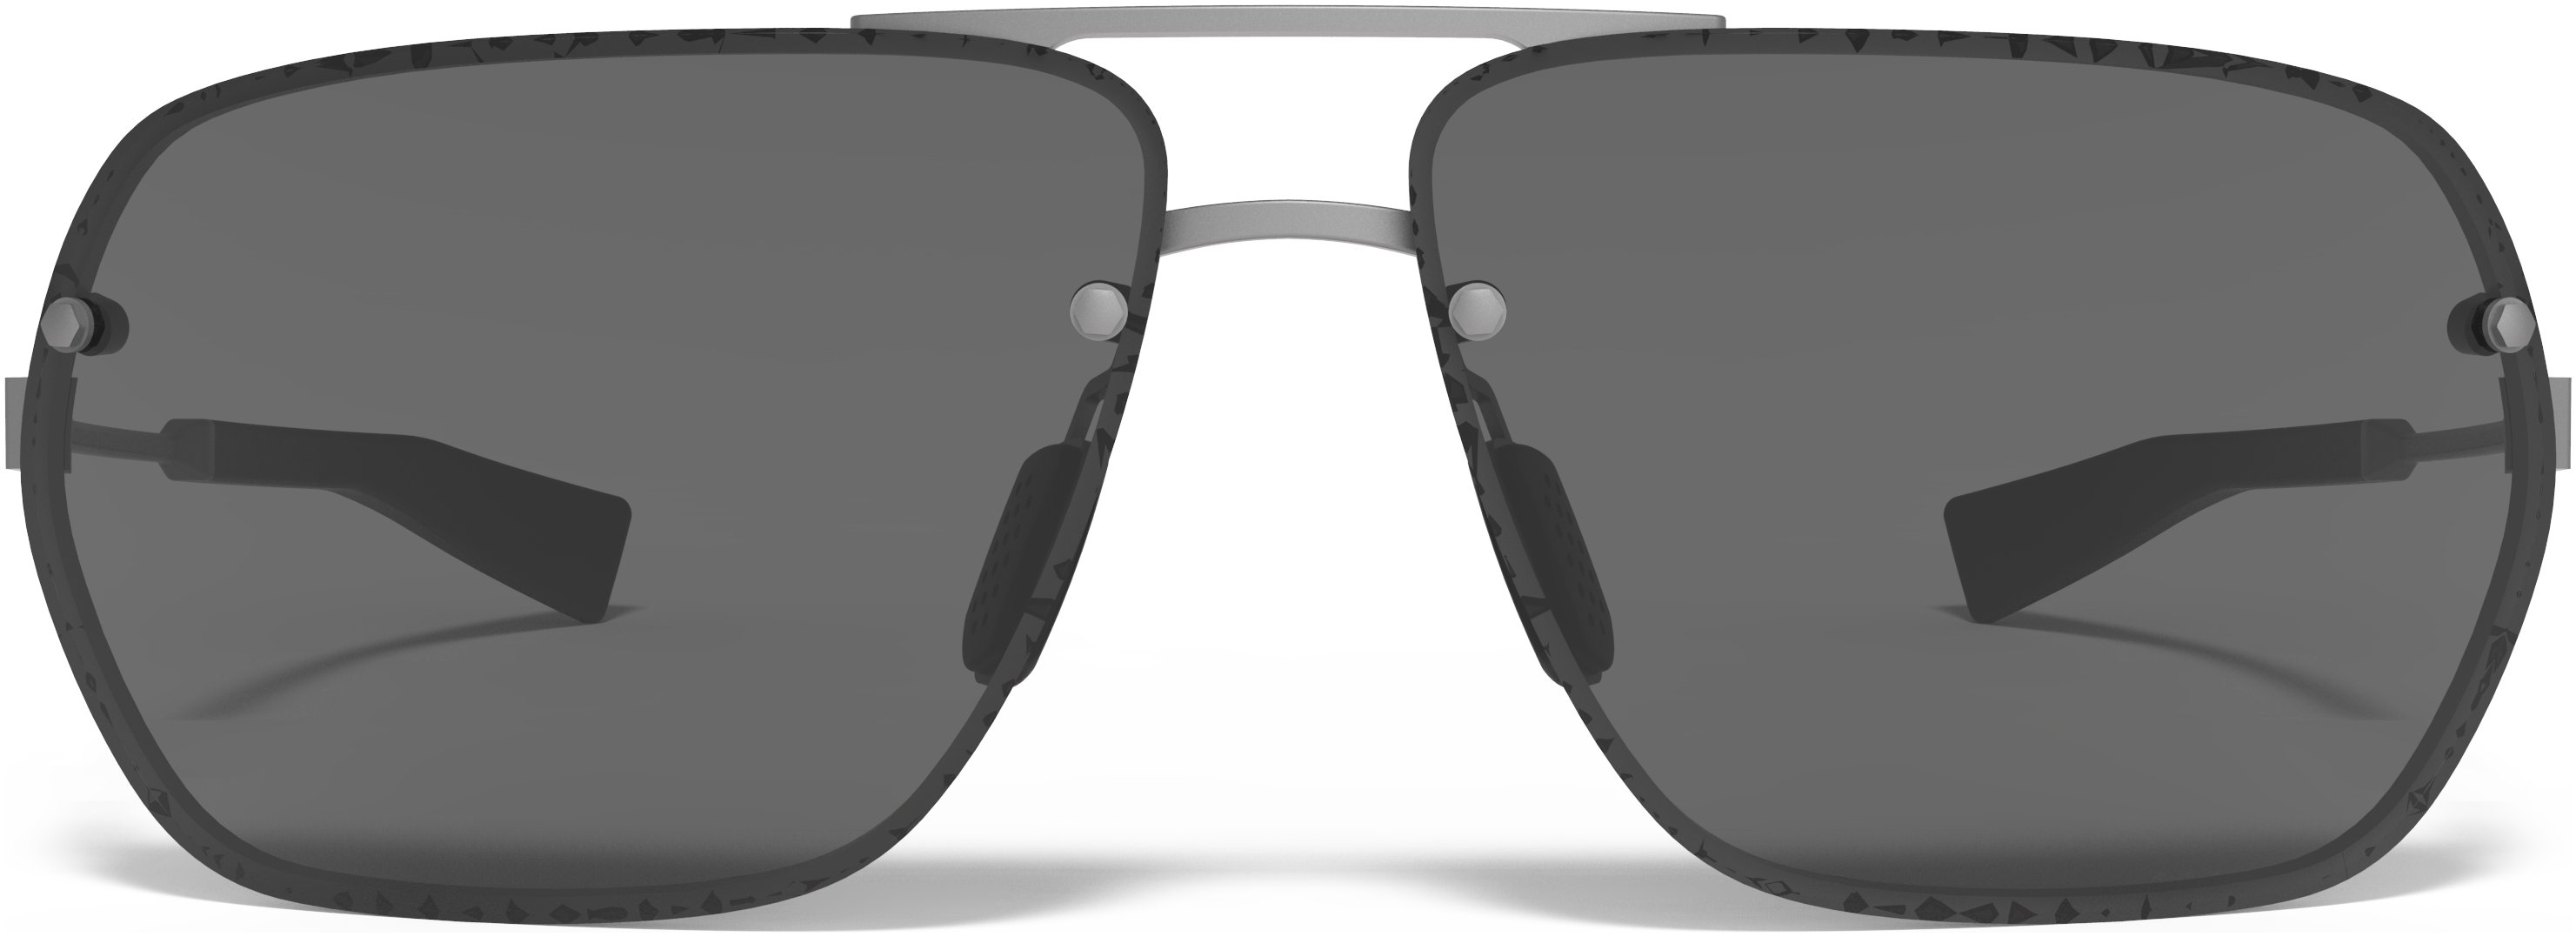 UA Hi-Roll Sunglasses, SATIN GUNMETAL, undefined